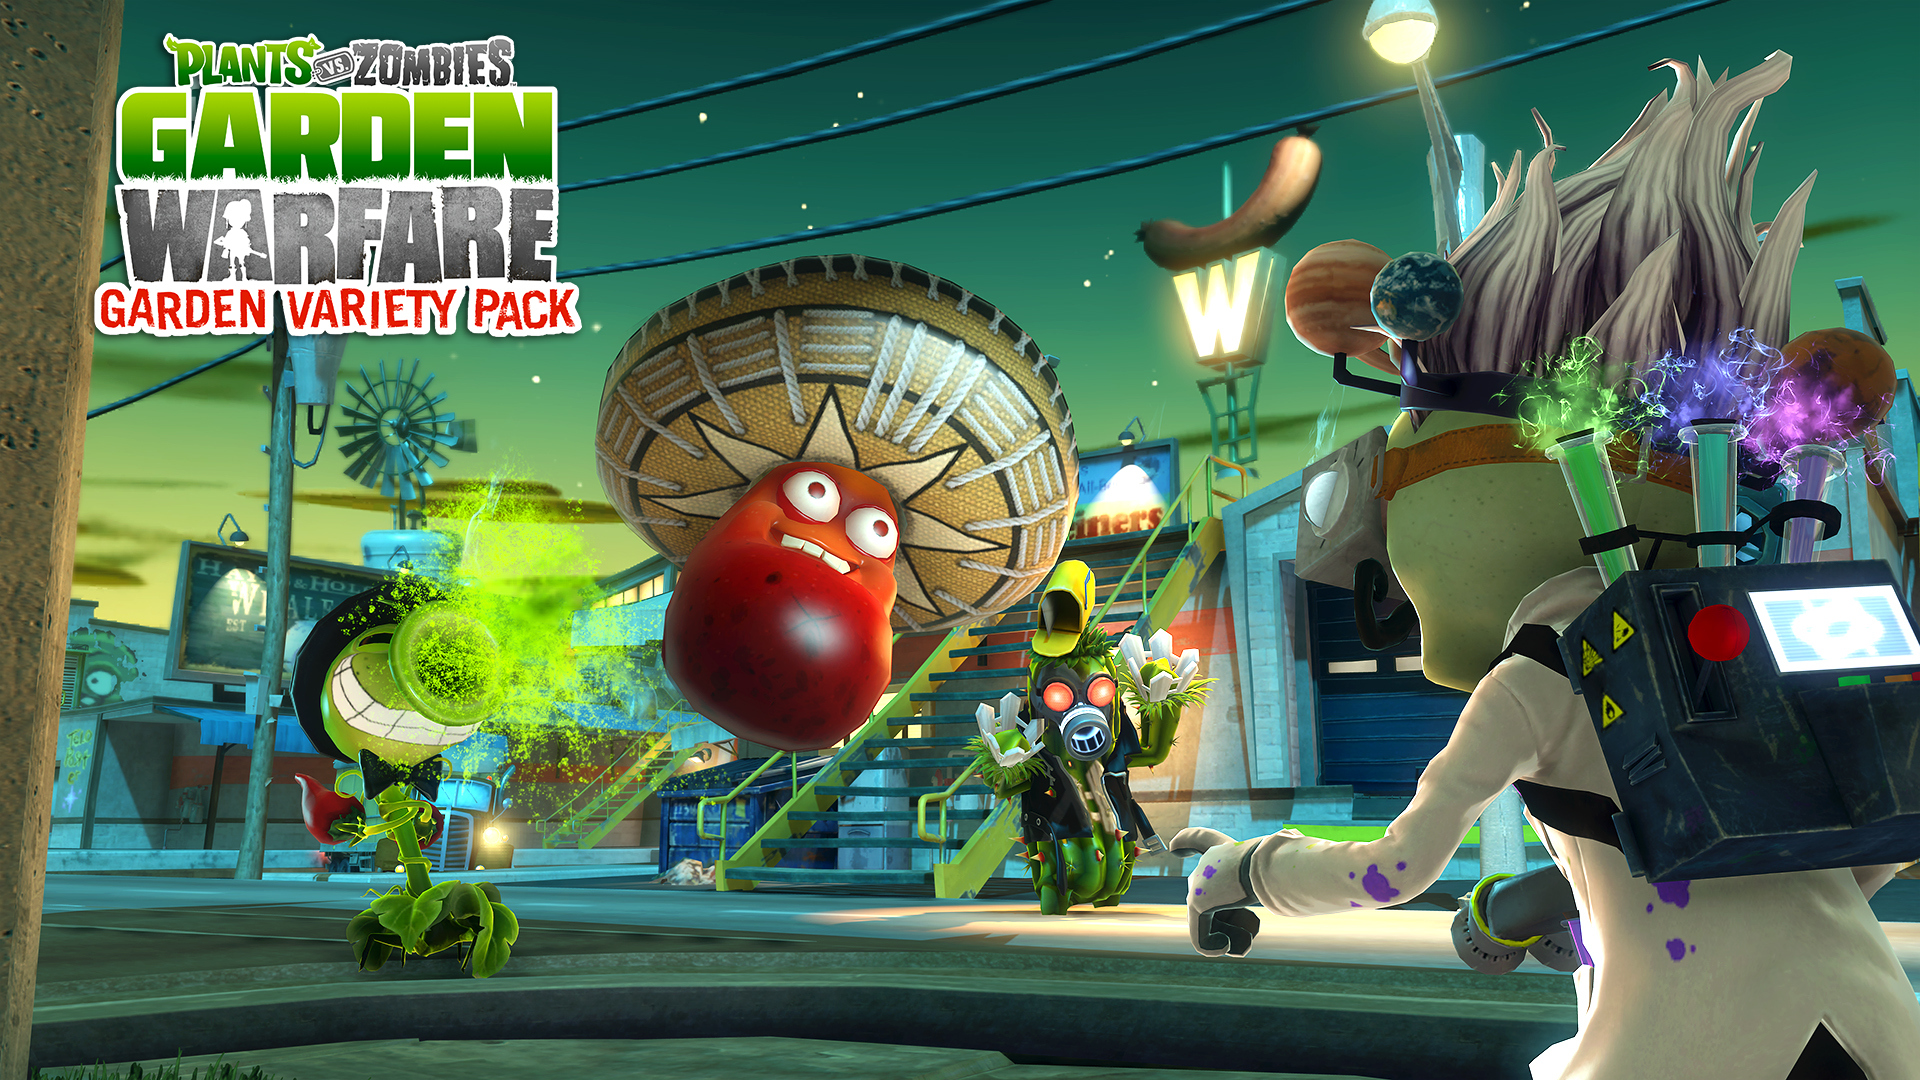 plants galleries gameplanet image new zombies war vs playstation zealand garden at warfare preview